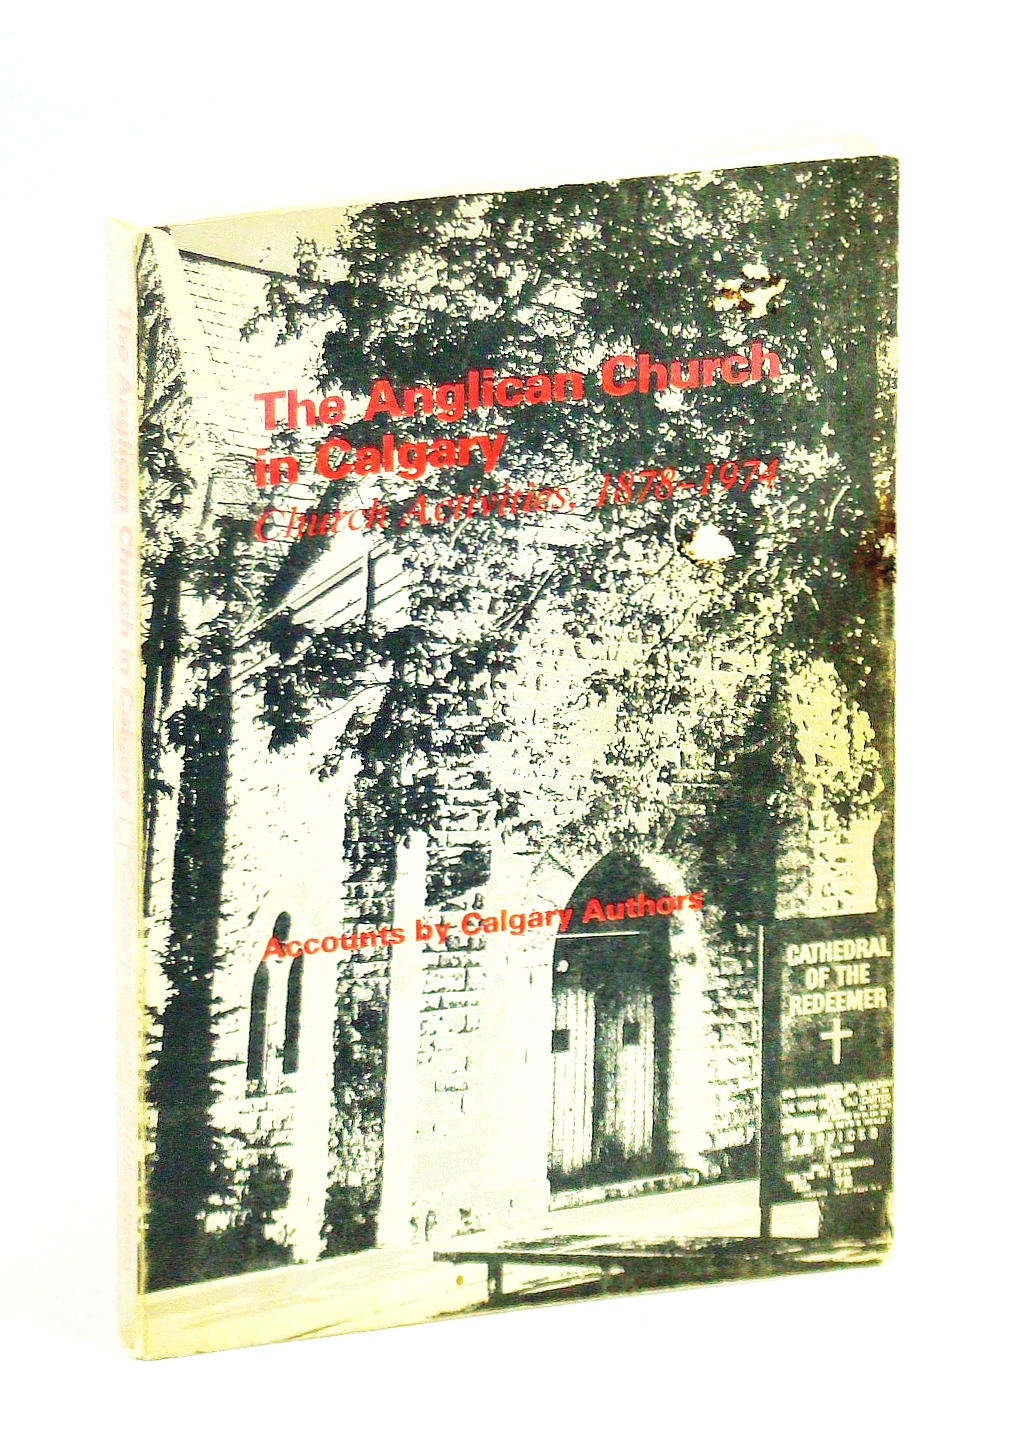 Image for The Anglican Church in Calvary: Church Activities, 1878 - 1974 - Accounts by Calgary Authors